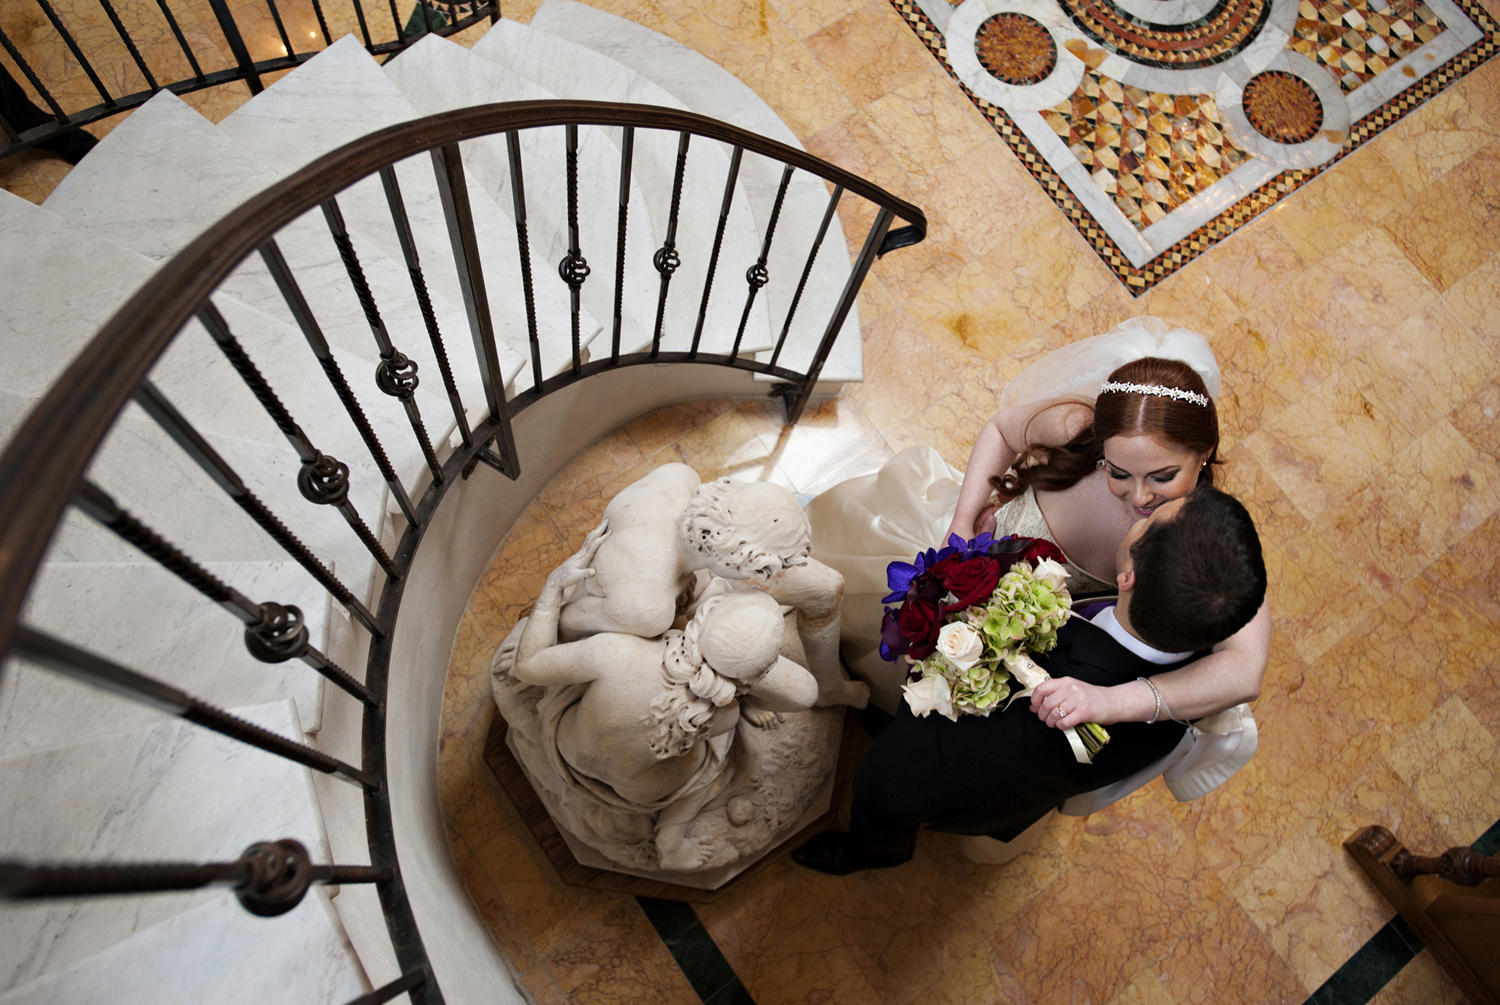 Portrait of bride and groom shot overhead on their wedding day at Pleasantdale Chateau